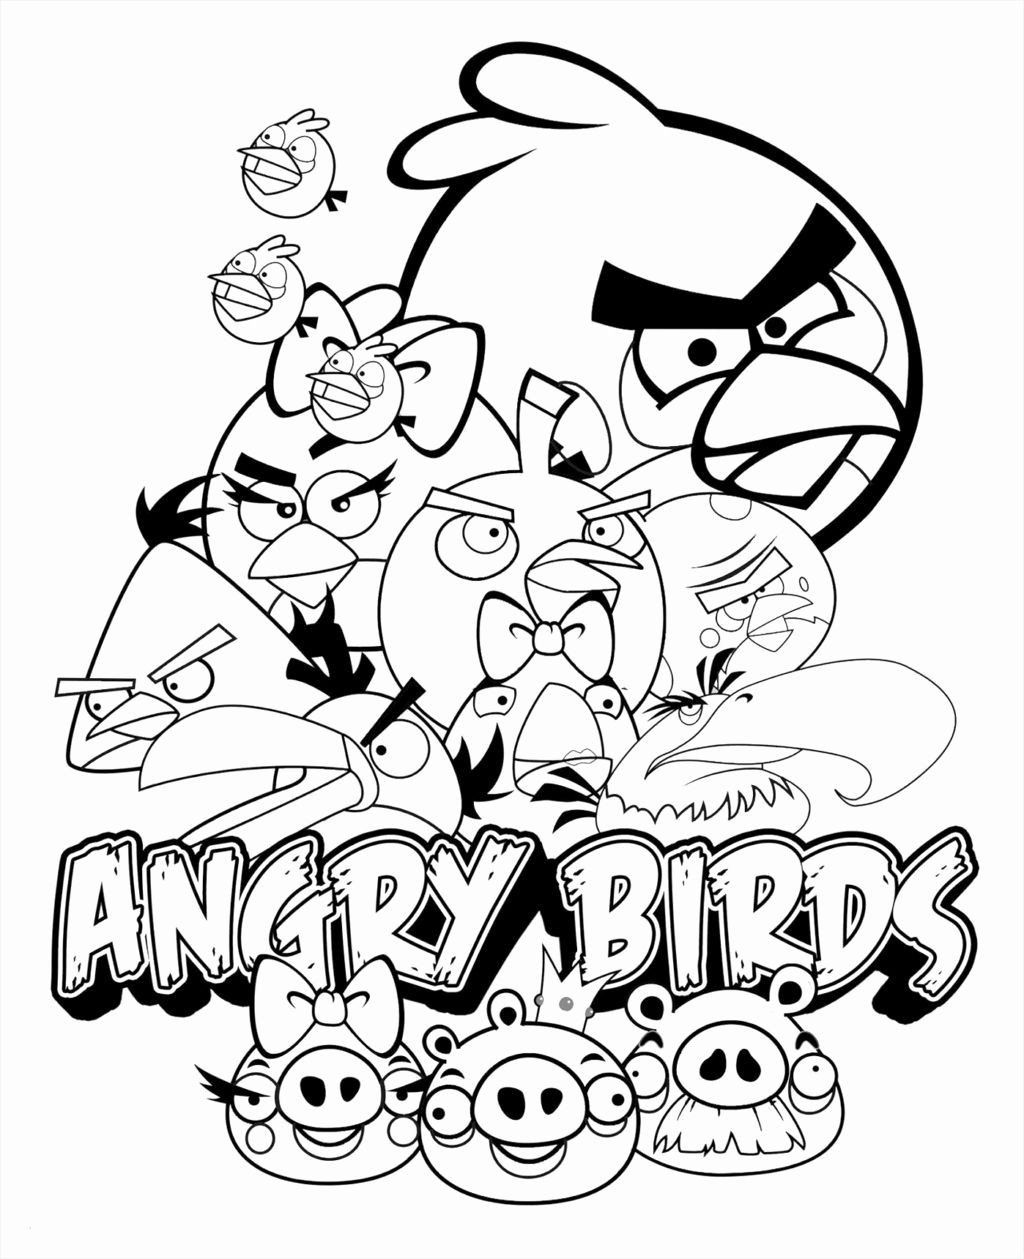 Angry Birds Coloring Game Coloring Pages Angry Bird Bird Coloring Pages Cartoon Coloring Pages Animal Coloring Pages